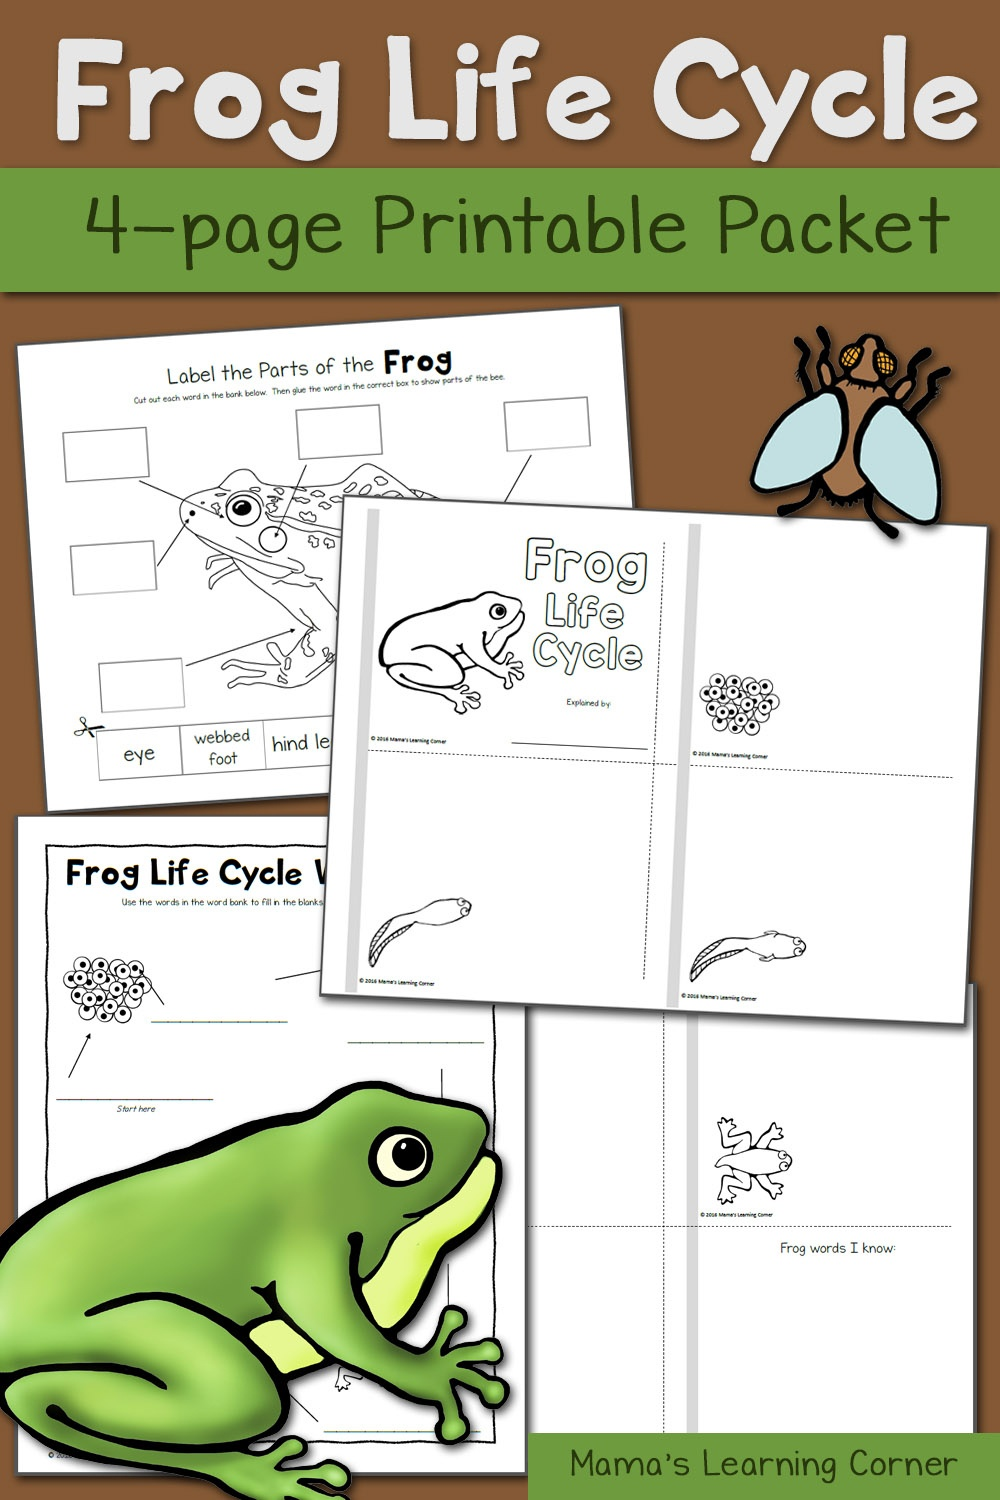 Frog Life Cycle Worksheets - Mamas Learning Corner - Life Cycle Of A Frog Free Printable Book